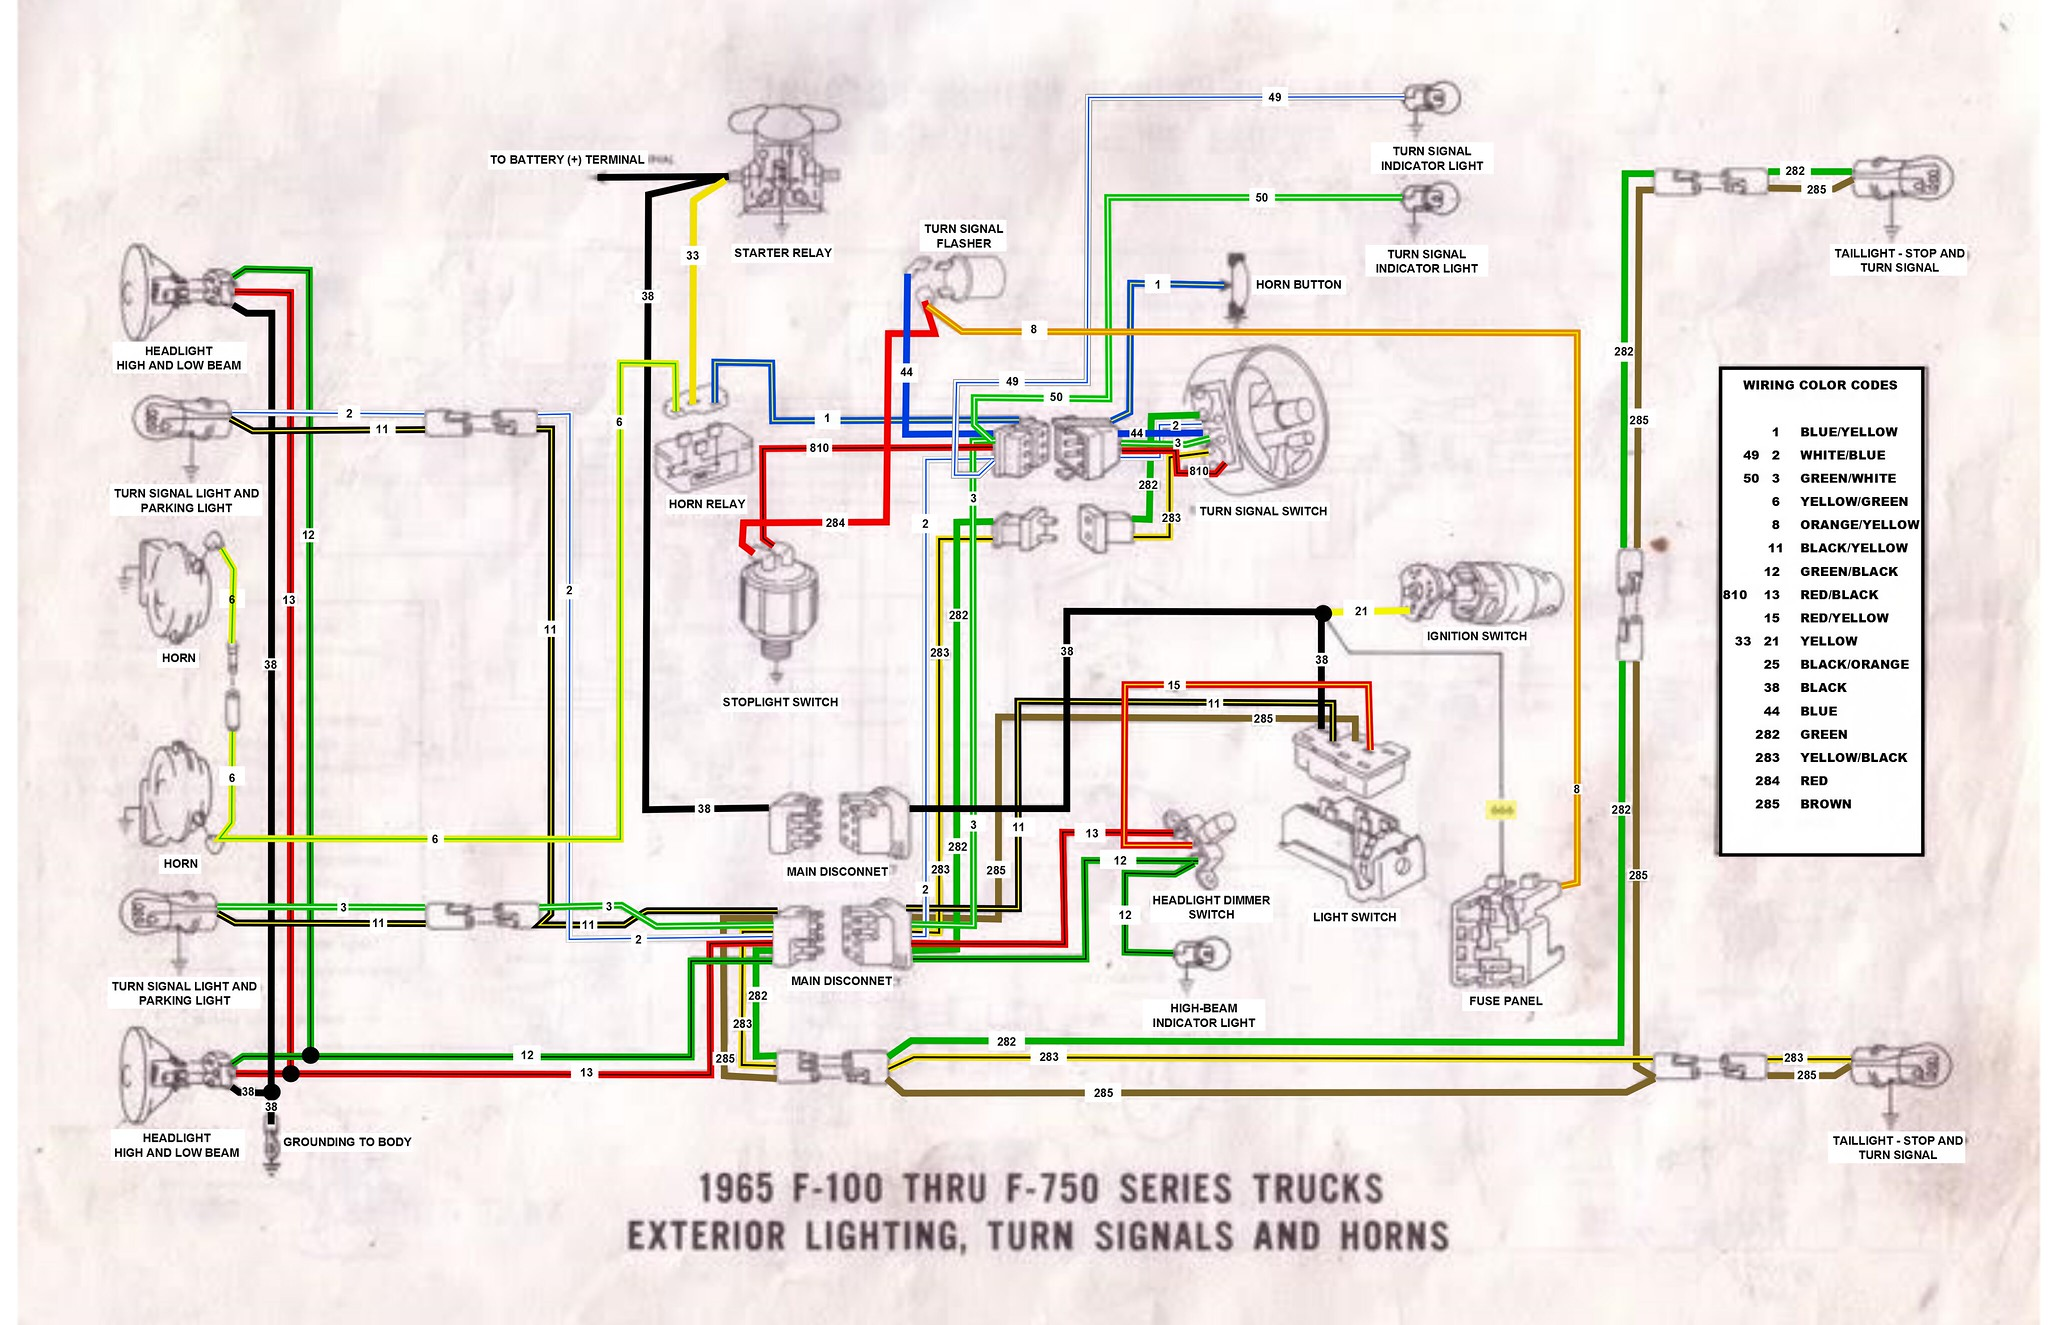 23151347139_19ad53cd17_k 65 f100 thru f750 exterior wiring diagram ford truck enthusiasts ford f750 wiring diagram at mifinder.co